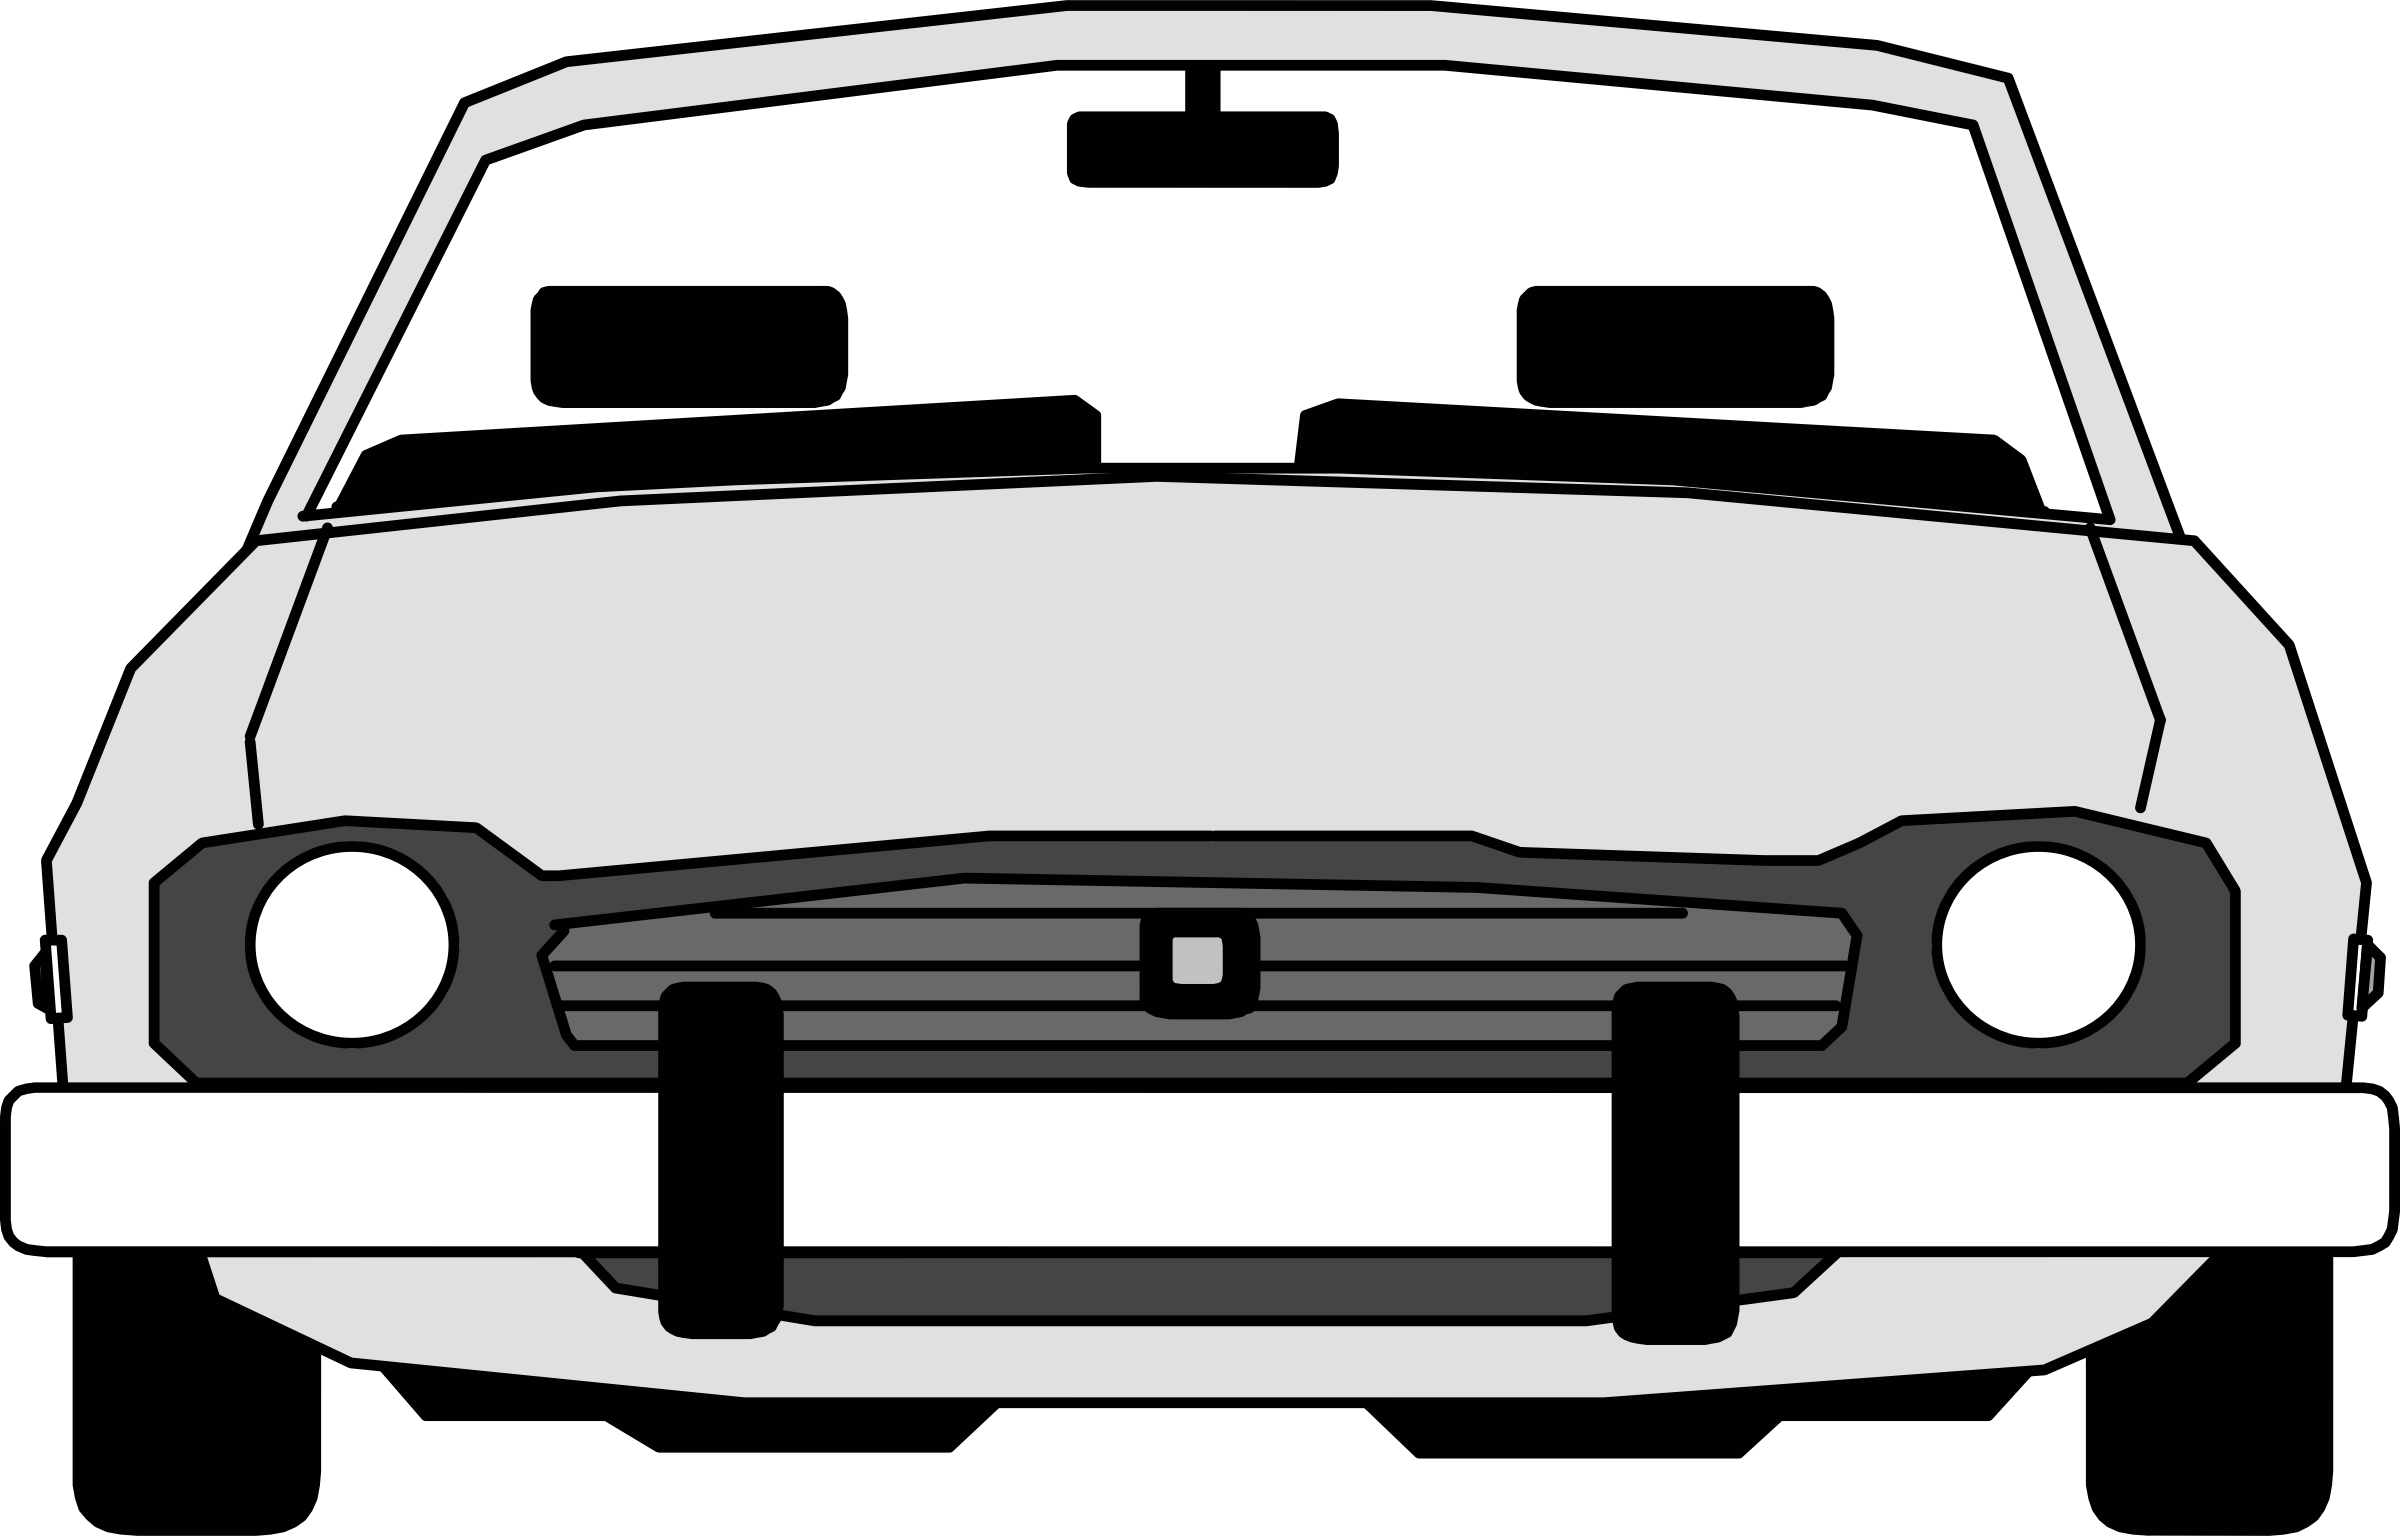 Front of a car clipart picture freeuse 28+ Collection of Front View Of A Car Clipart | High quality, free ... picture freeuse